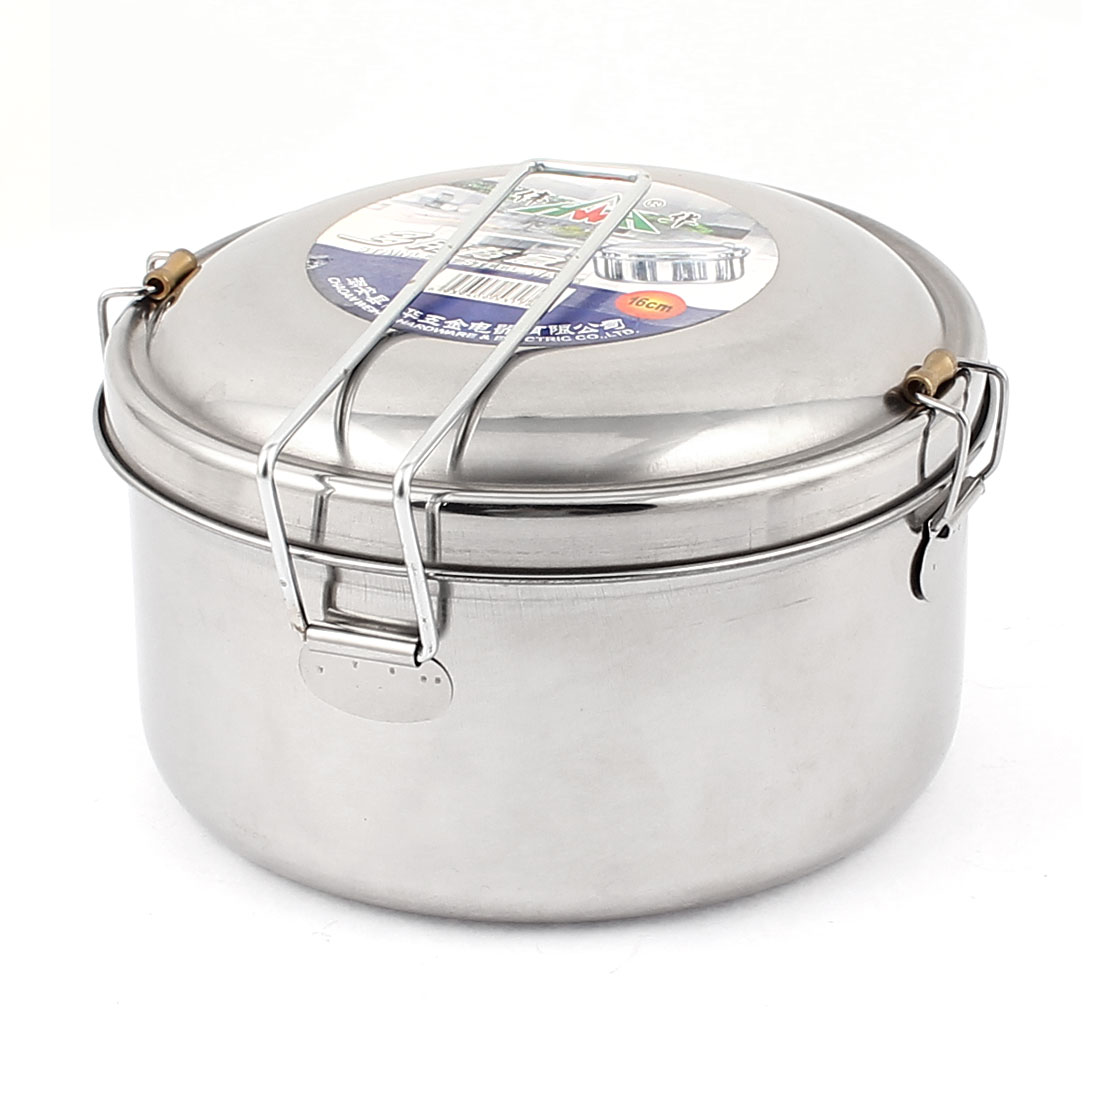 Stainless Steel Round Lunch Box Food Storage Container 16cm Dia Silver Tone